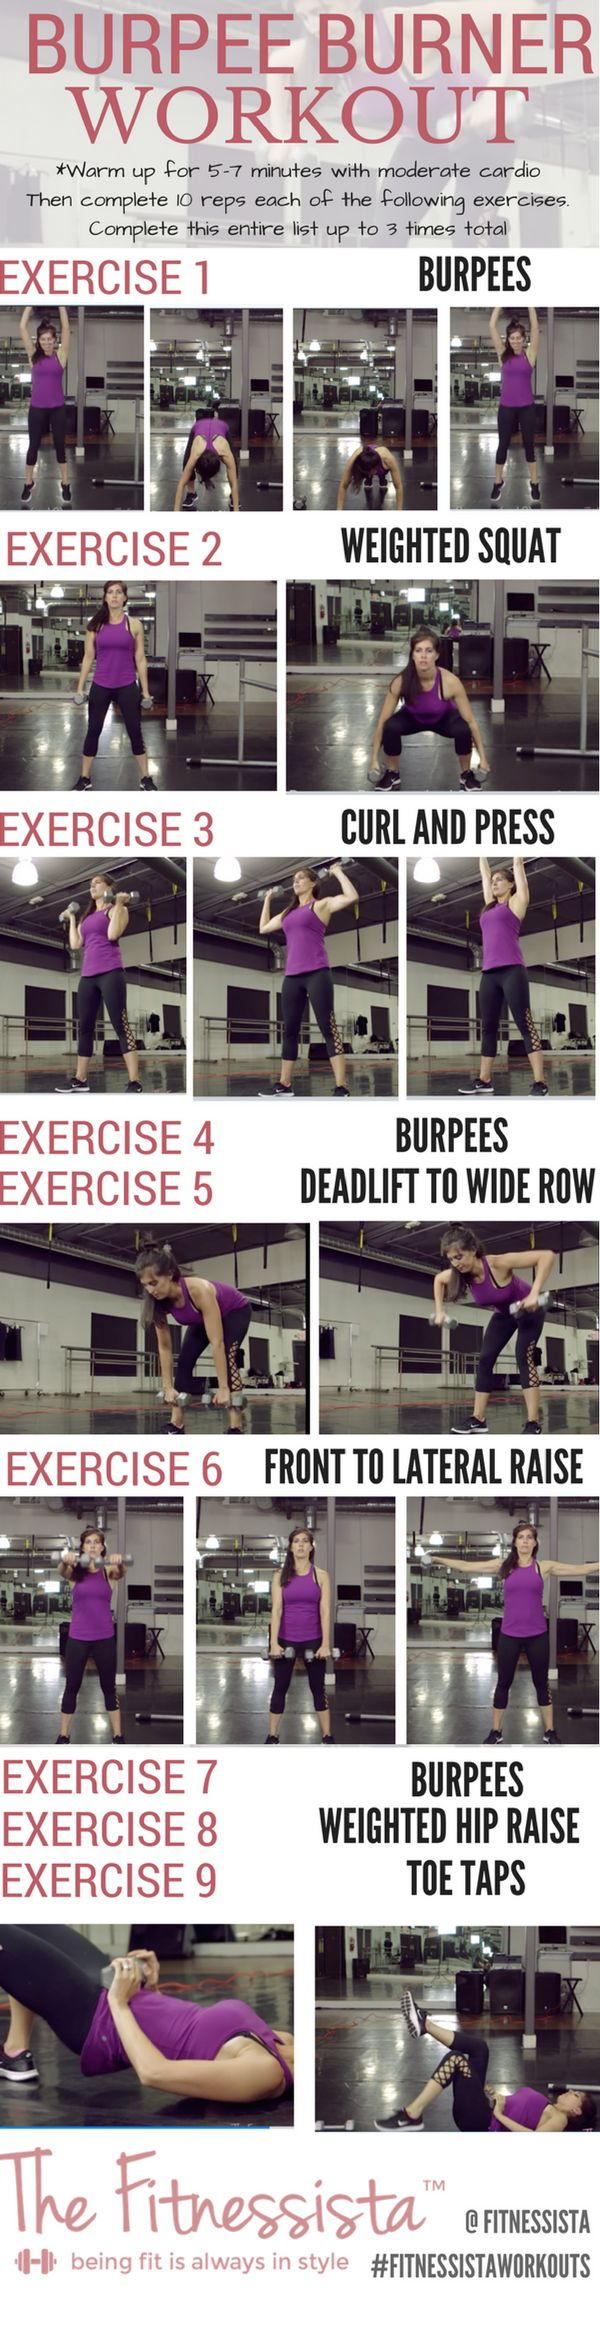 A total body burpee workout! Burpee blasts fire up your heat rate and burn major calories. Save for the next time you want a killer strength and cardio workout! fitnessista.com